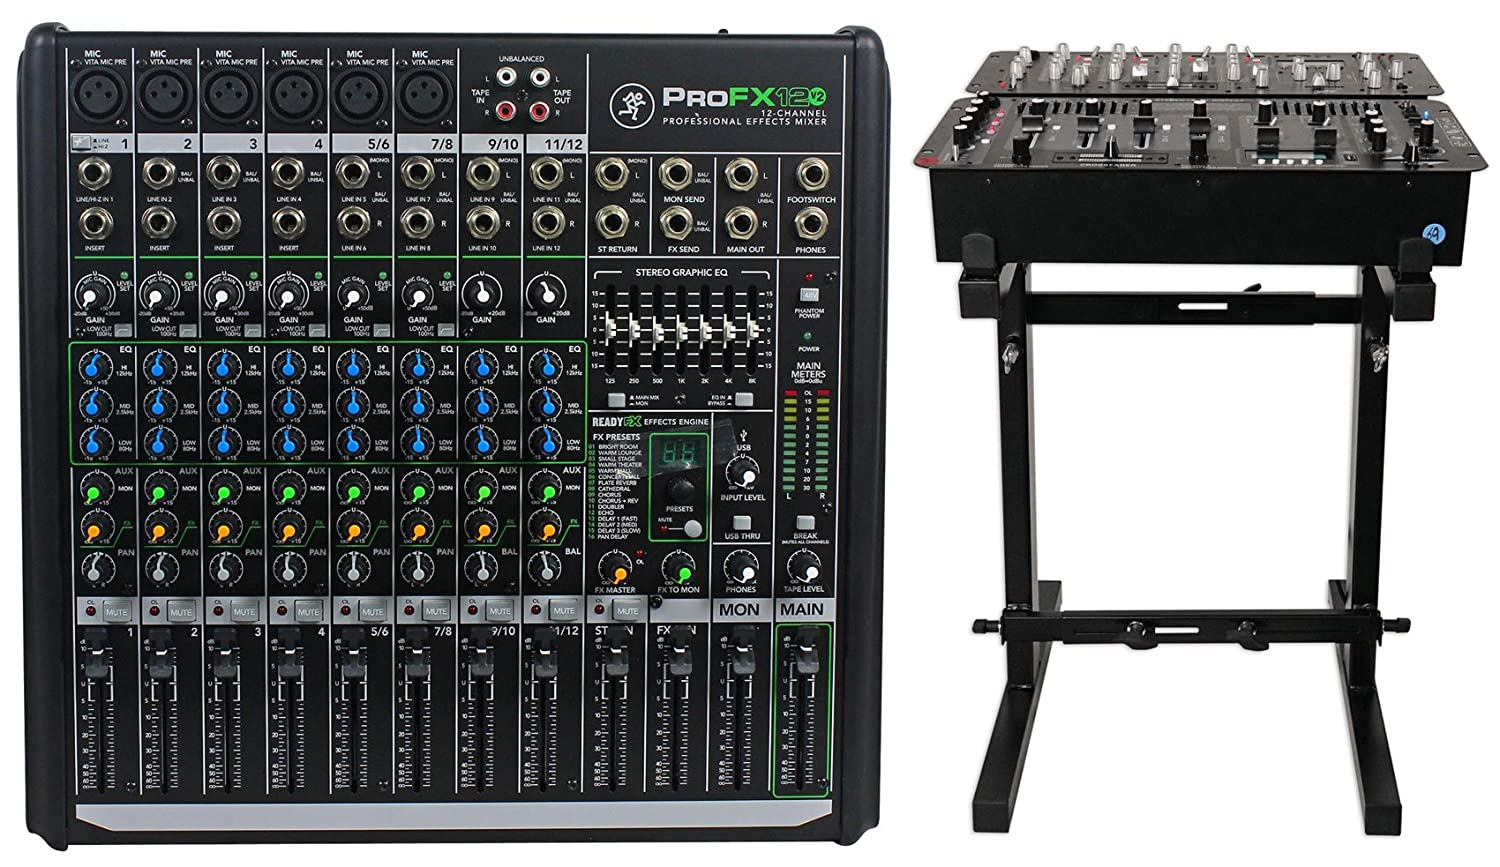 Mackie PROFX12v2 Pro 12 Channel Compact Mixer w Effects and USB PROFX12 V2+Stand ProFX12v2+RXS20